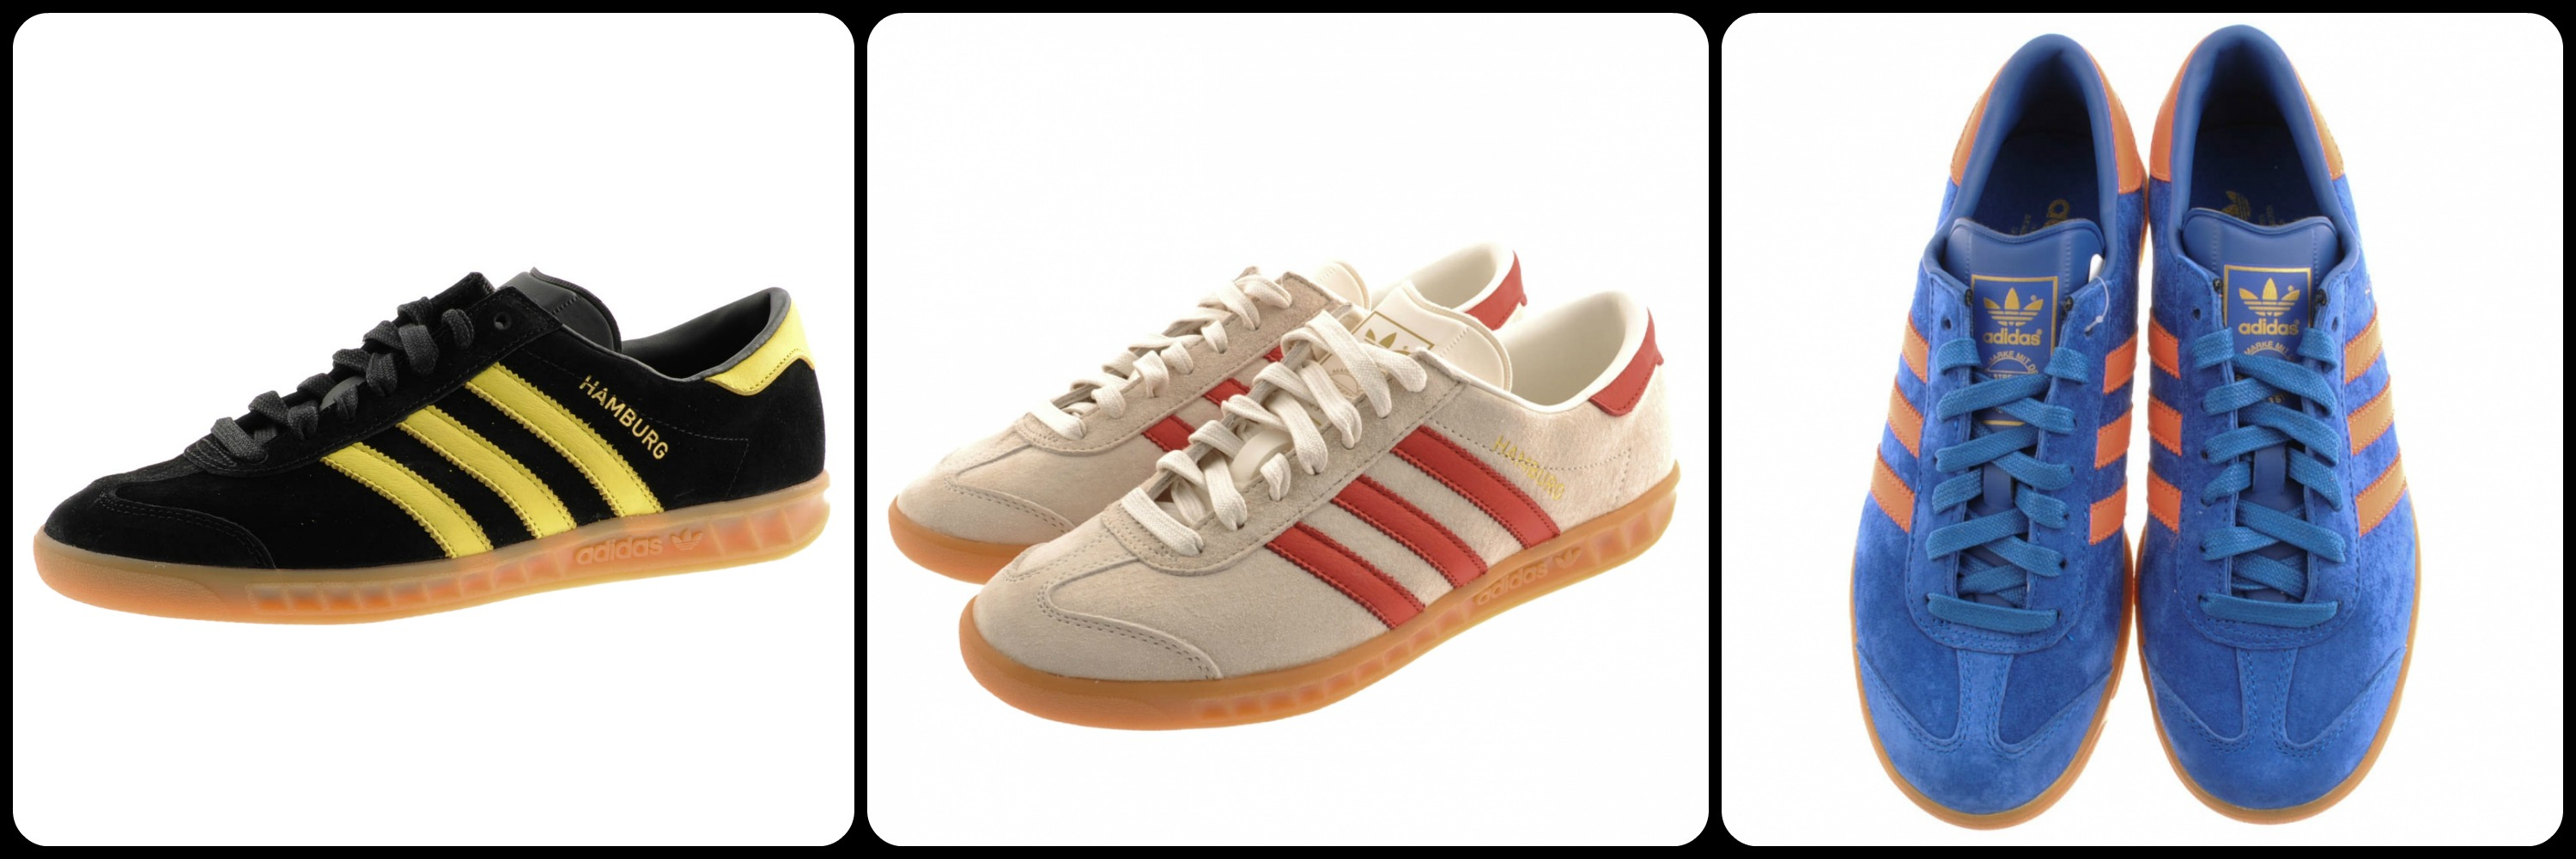 exquisite style look for classic styles The Story behind - adidas Original's Hamburg